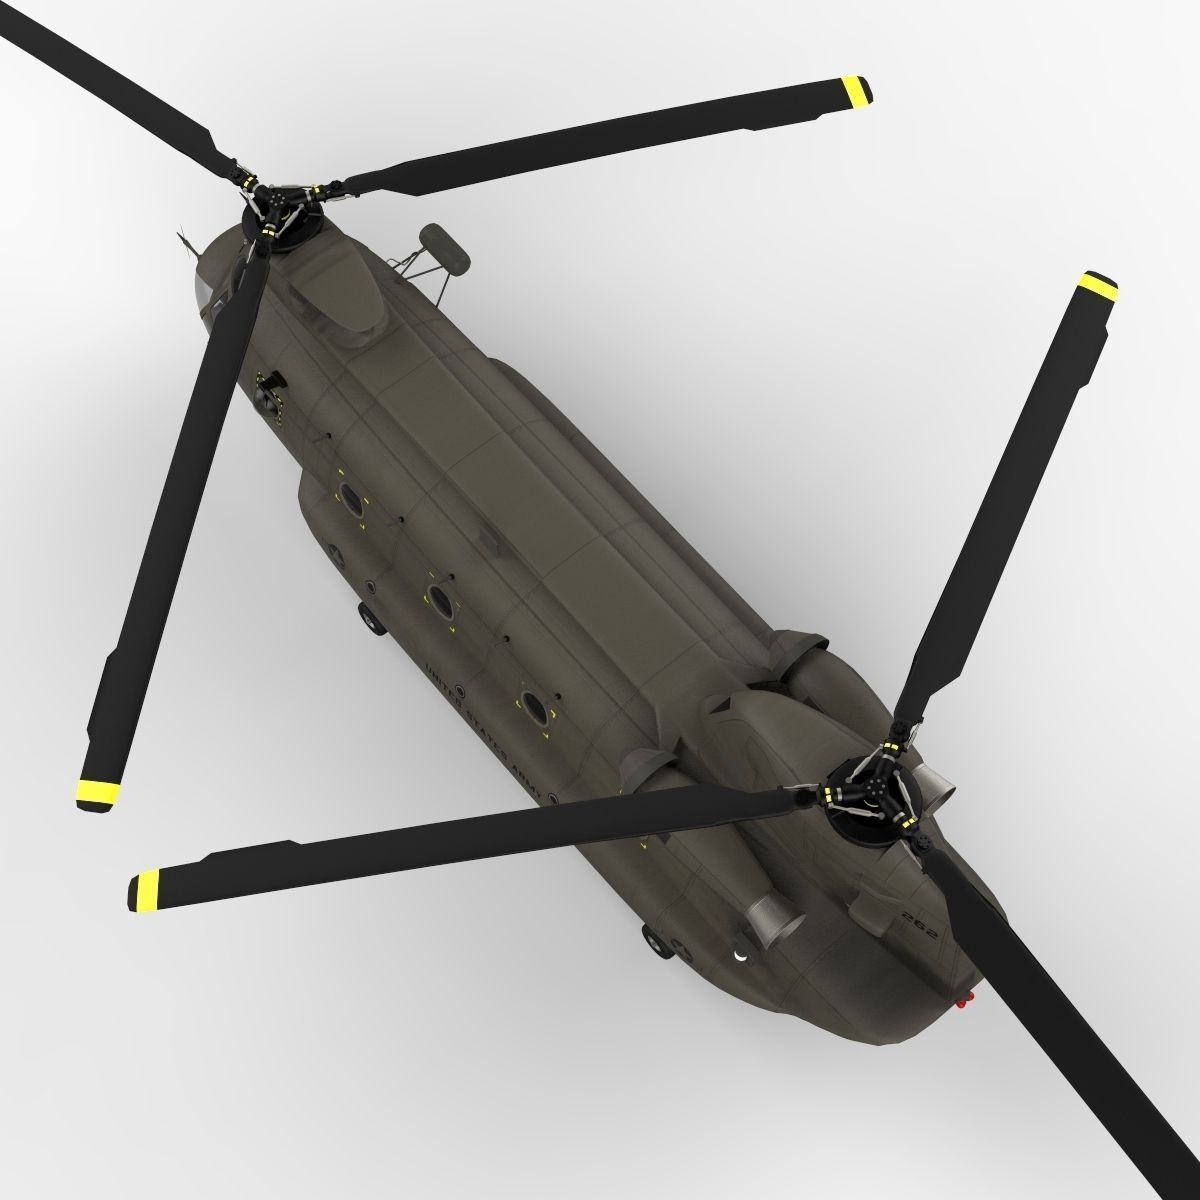 Ch47 Chinook Helicopter Prerigged For Craf 3d Model